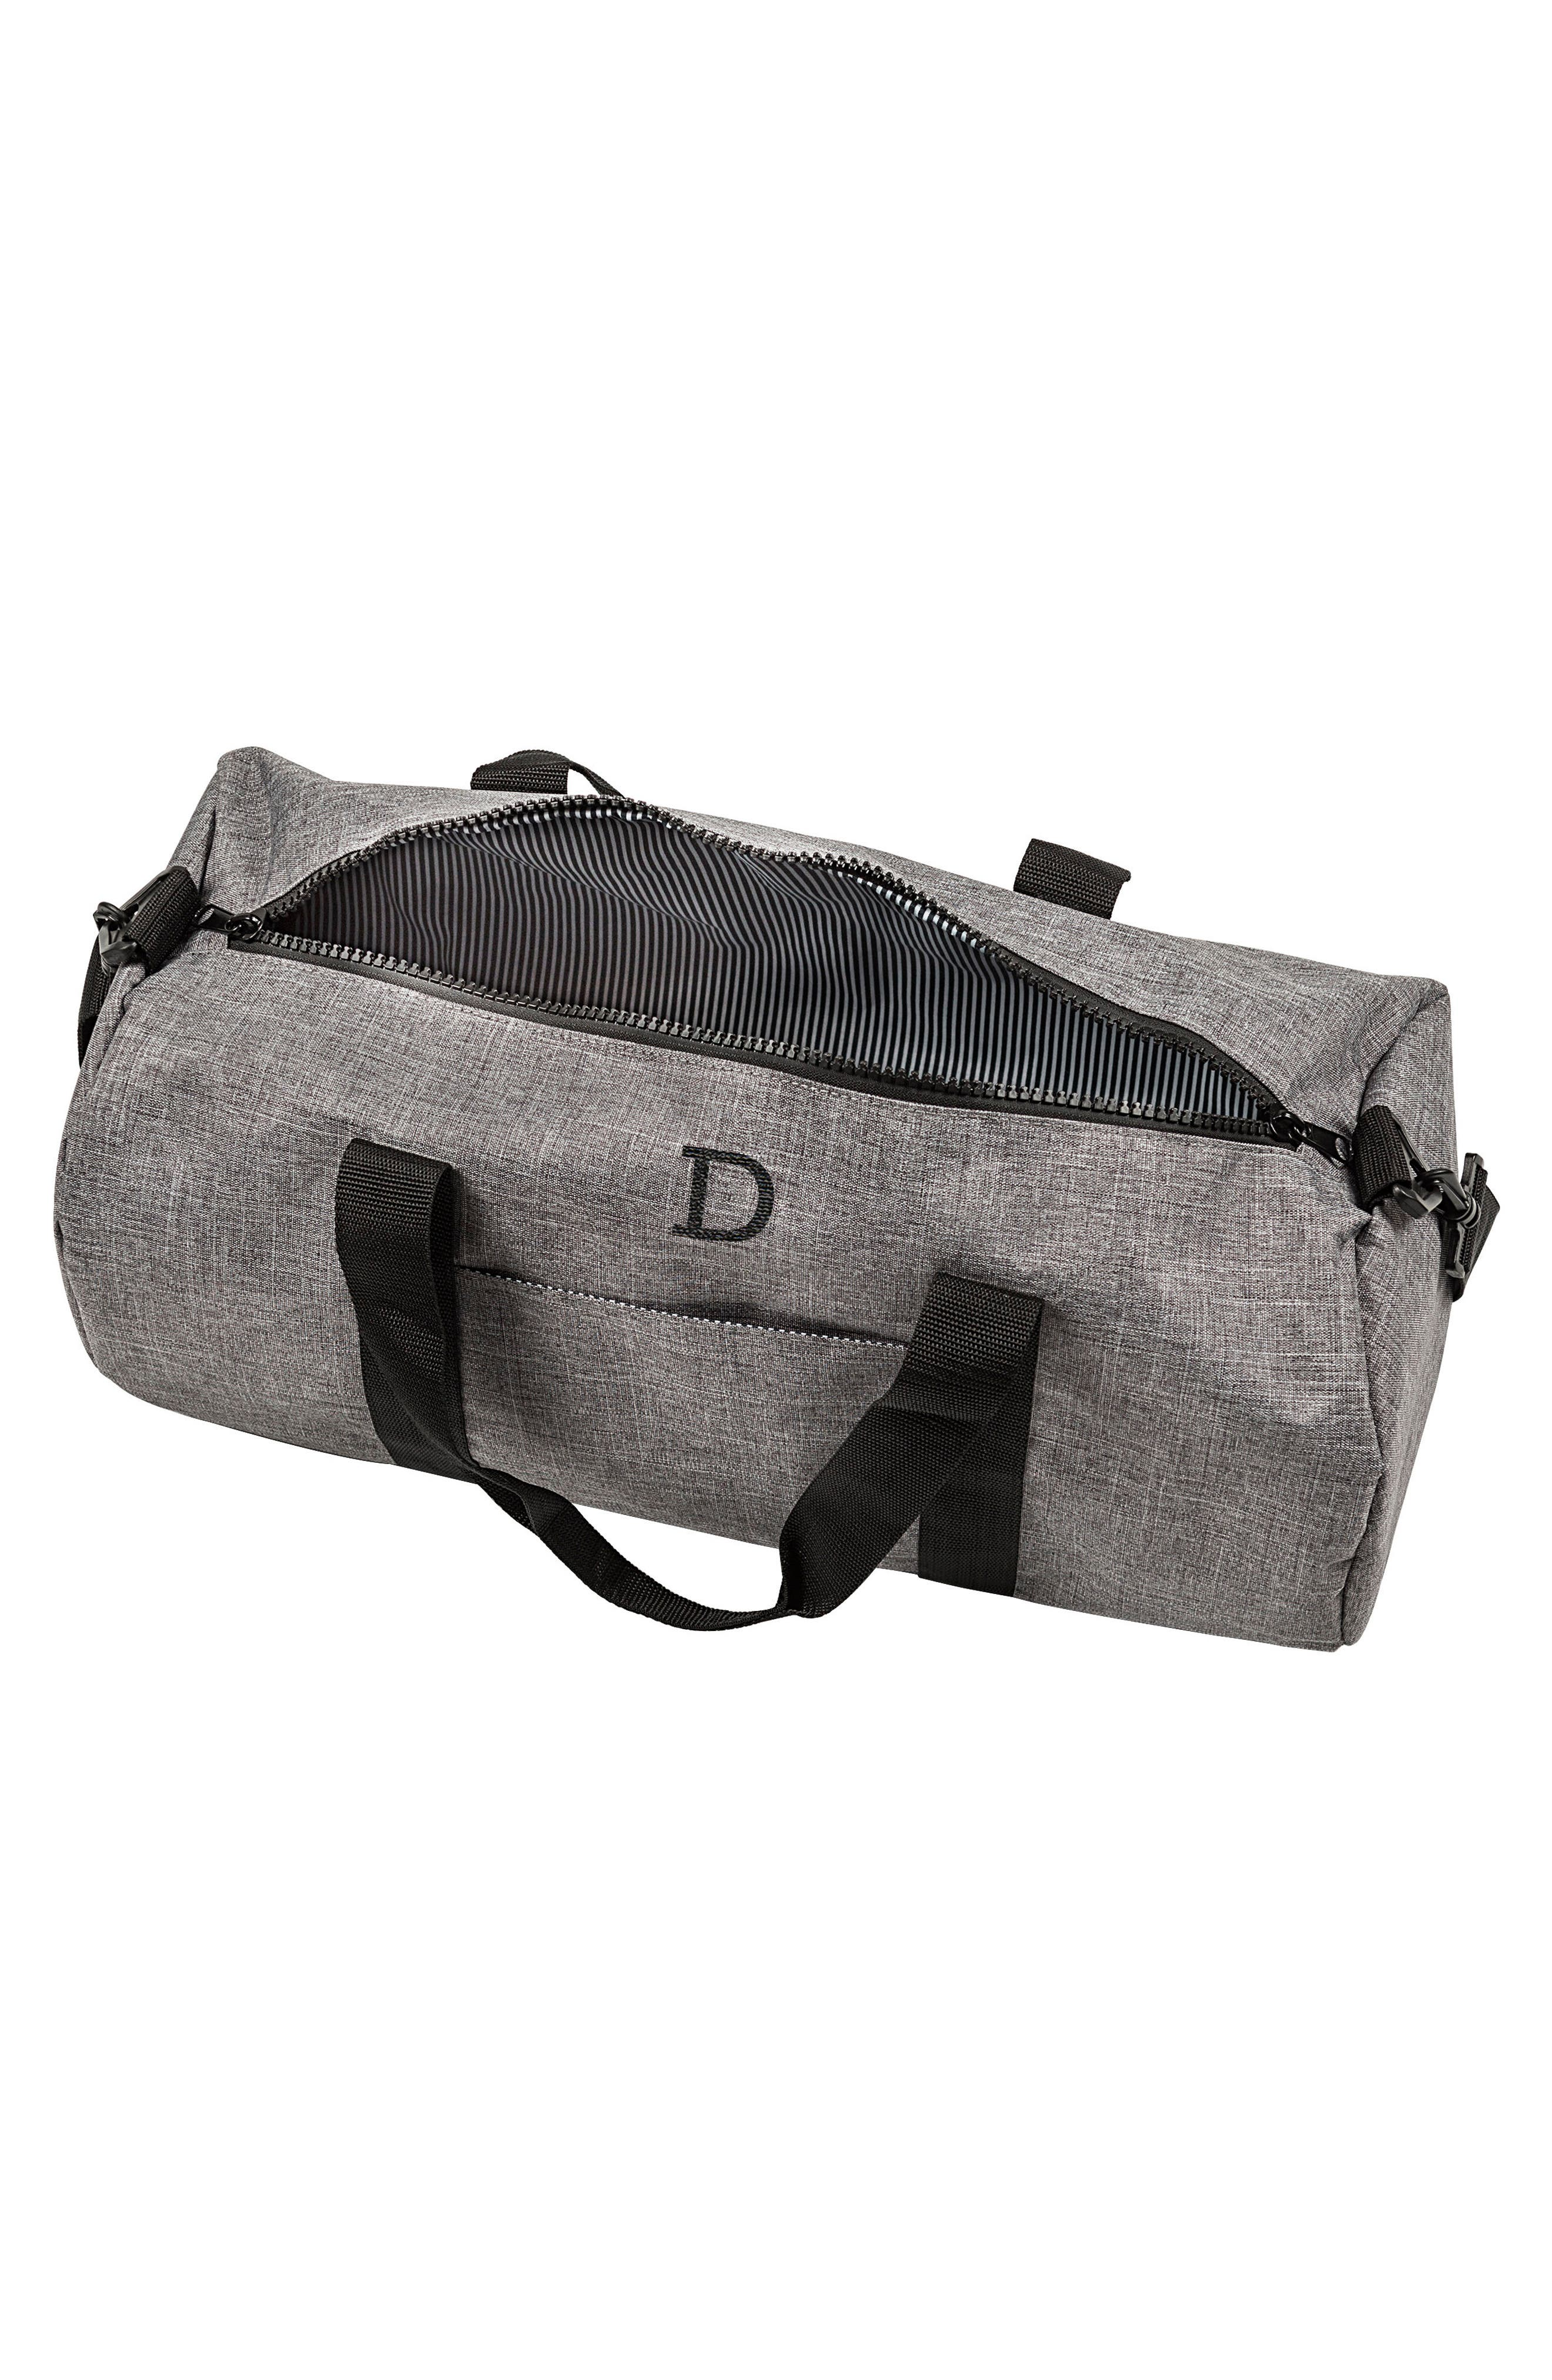 Monogram Duffel Bag,                             Alternate thumbnail 2, color,                             GREY